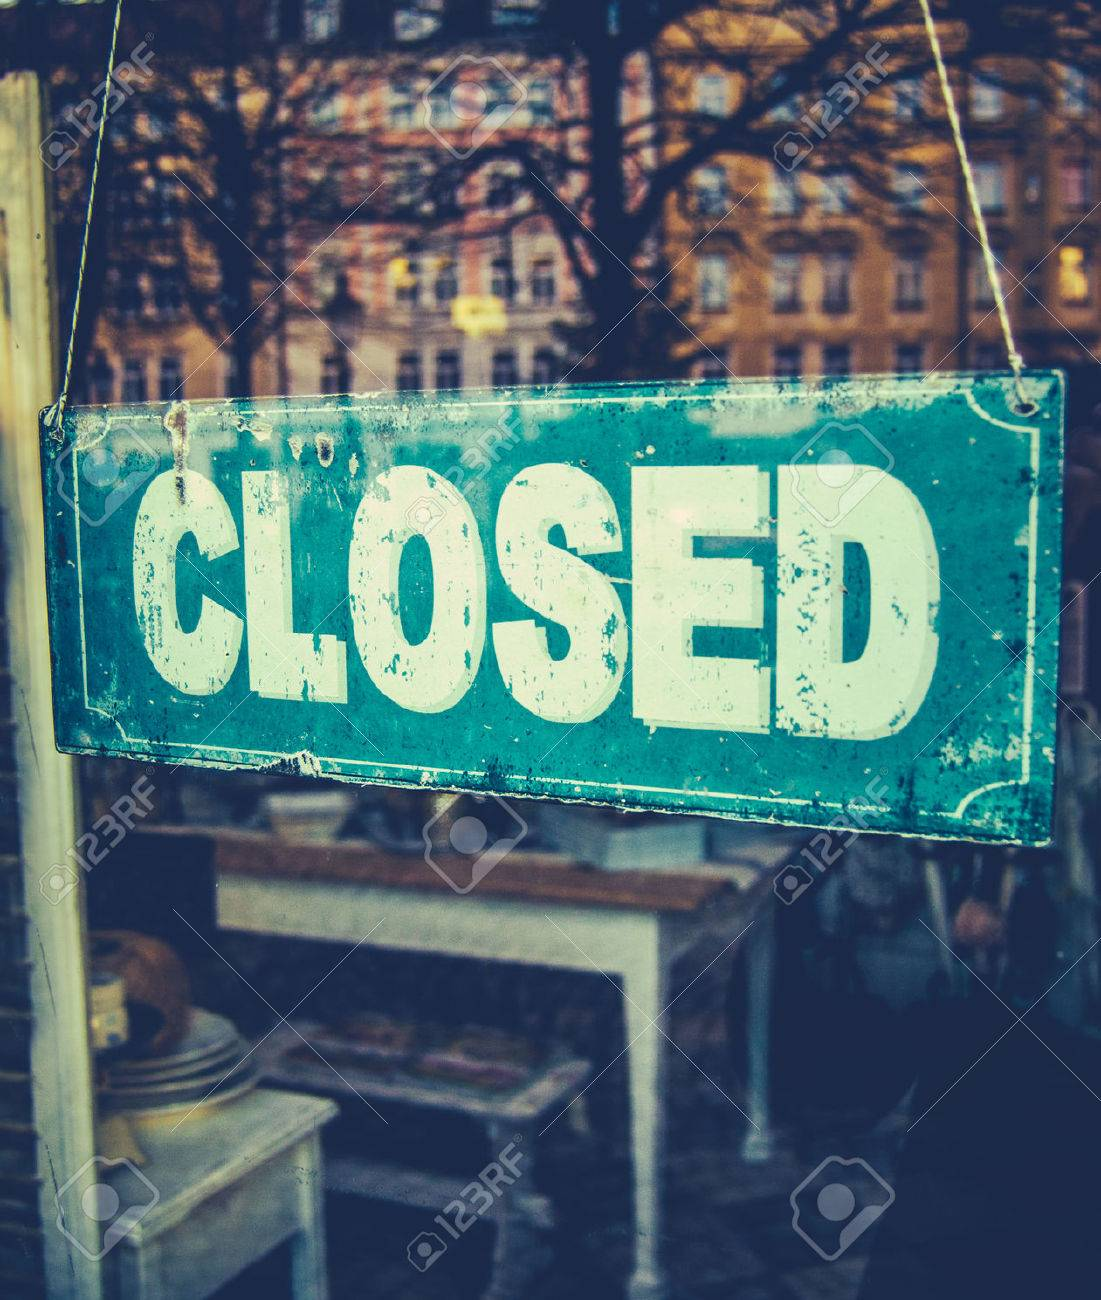 Retail Image Of Grungy Vintage Closed Sign In Furniture Boutique